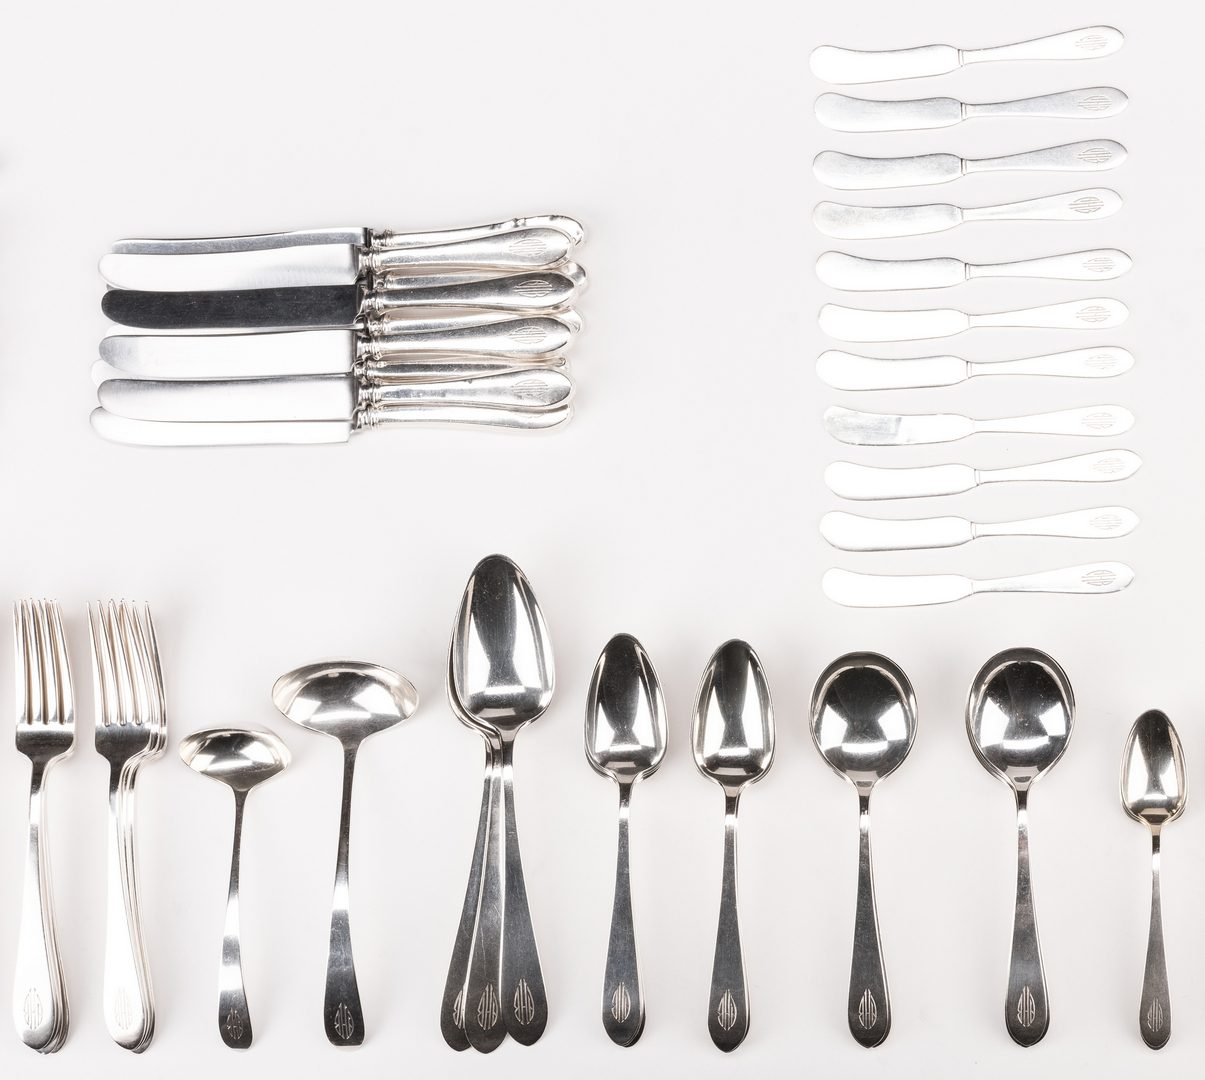 Lot 76: 112 Gorham Sterling Flatware, inc. Plain & Covington, 113 Pcs.